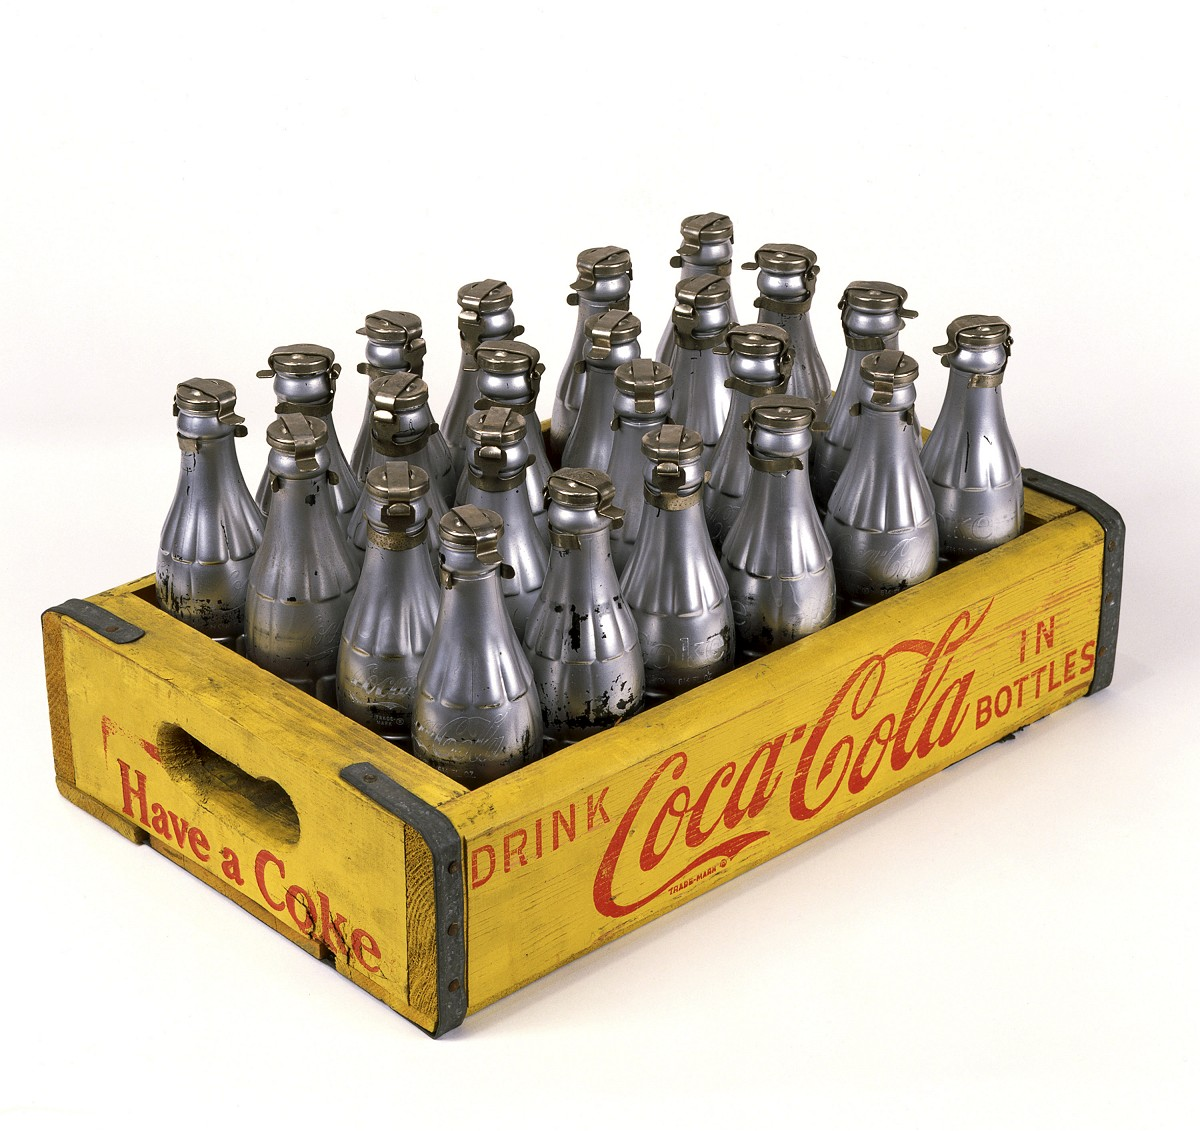 Andy WarholAmerican 1928–87You're In1967spray paint on glass bottles in printed wooden crateCrate: 20.3 x 43.2 x 30.5 cmBottles (each): 20.3 x 5.7 cmDiameter: 18.7 cmThe Andy Warhol Museum, Pittsburgh; Founding Collection, Contribution The Andy Warhol Foundation for the Visual Arts, Inc.© 2015 The Andy Warhol Foundation for the Visual Arts, Inc./ARS, New York. Licensed by Viscopy, Sydney. EXHI037609